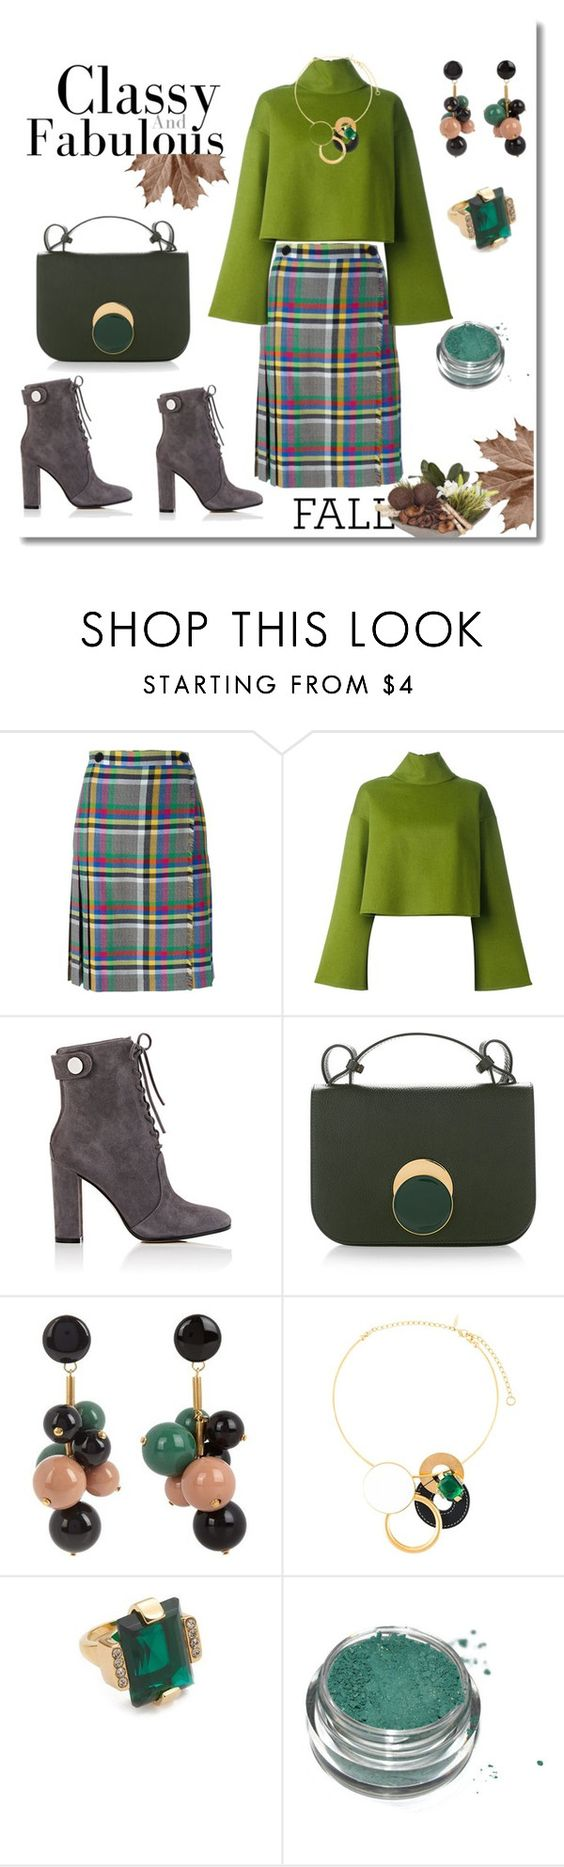 """Fall outfit!"" by faten-m-h ❤ liked on Polyvore featuring Marco de Vincenzo, Bally, Gianvito Rossi and Marni"